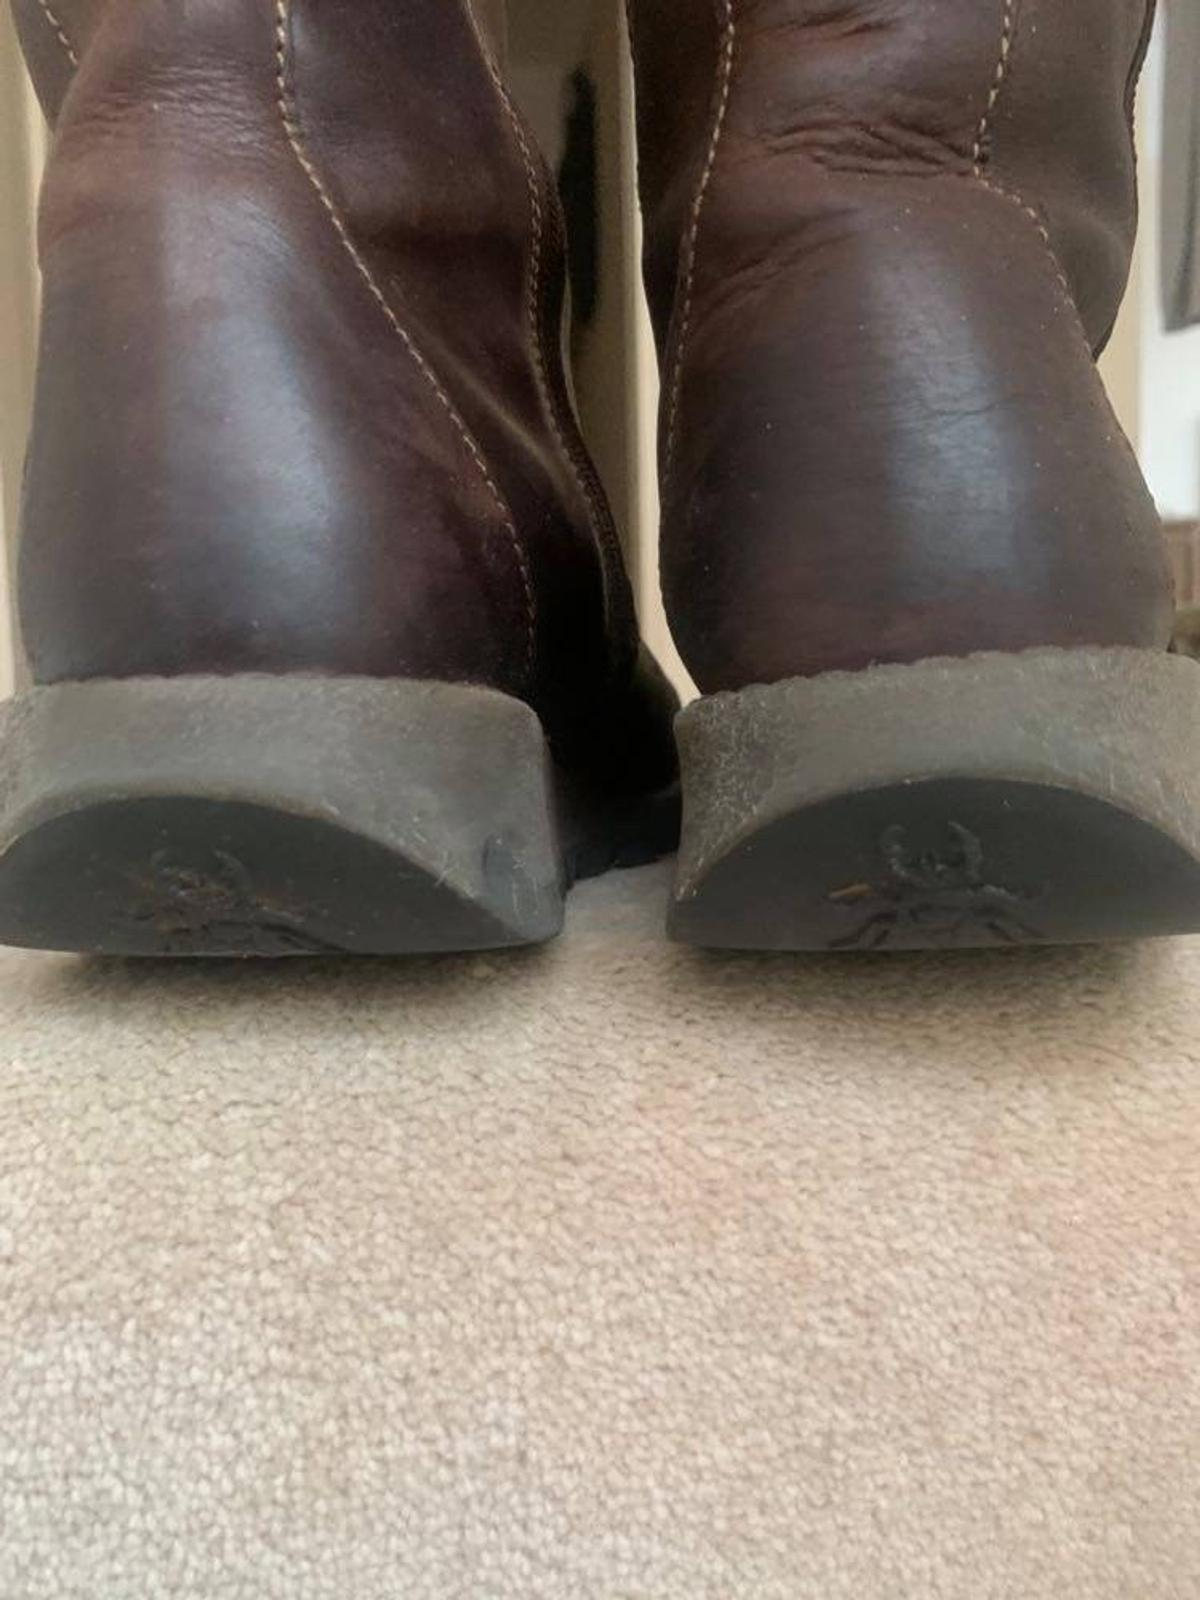 WB, Nottingham Fab condition as worn a handful of times They're too long, I'm used to calf length Fly Brown All hardware stamped Size 40 Really comfortable and great quality Great design and condition RRP £129...selling £59